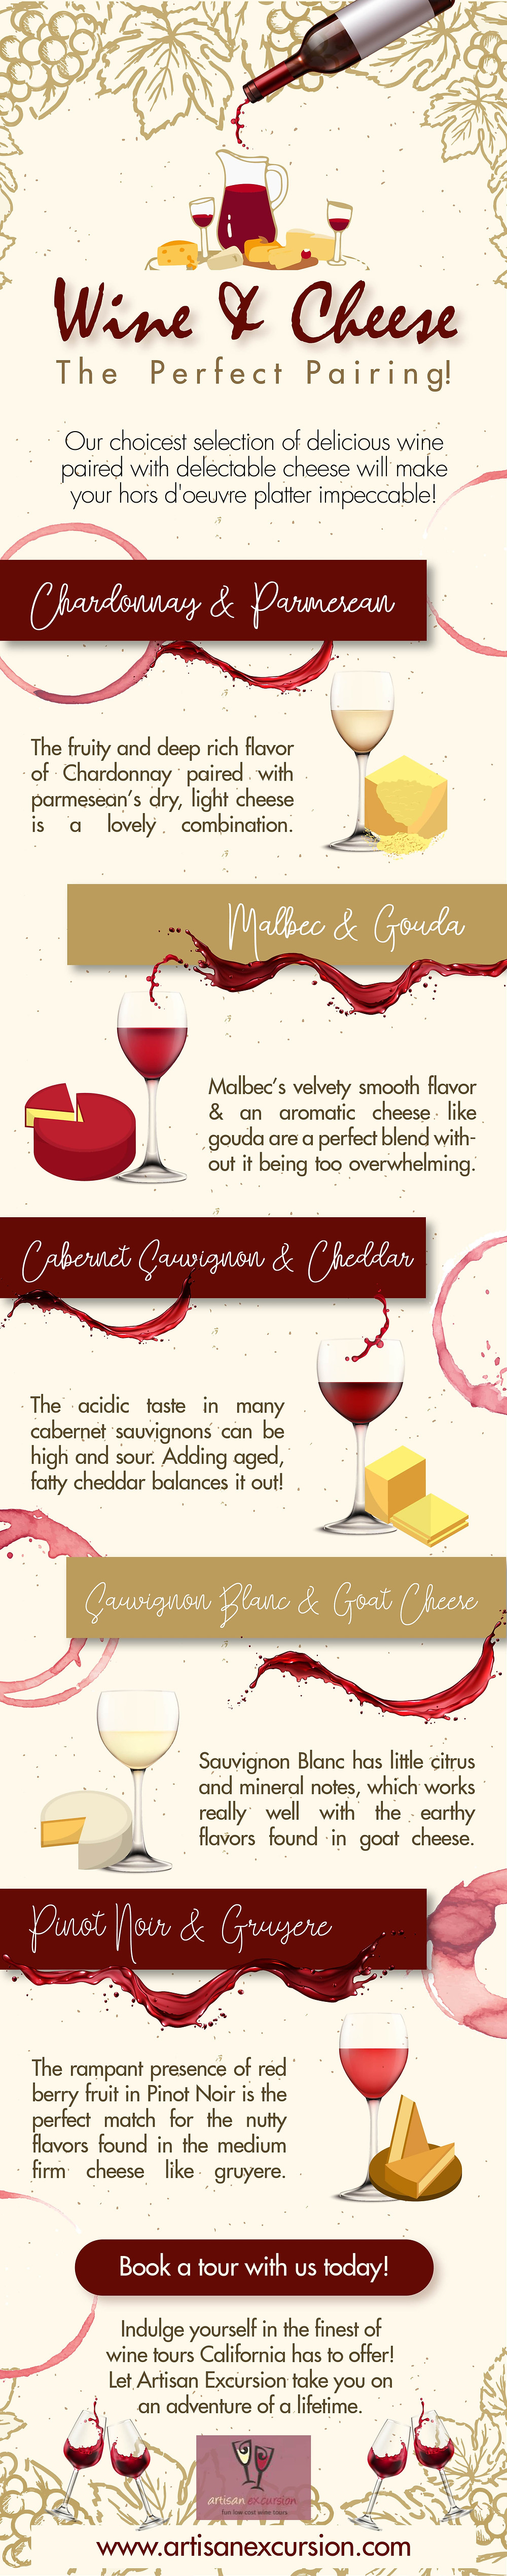 wine & cheese the perfect pairing